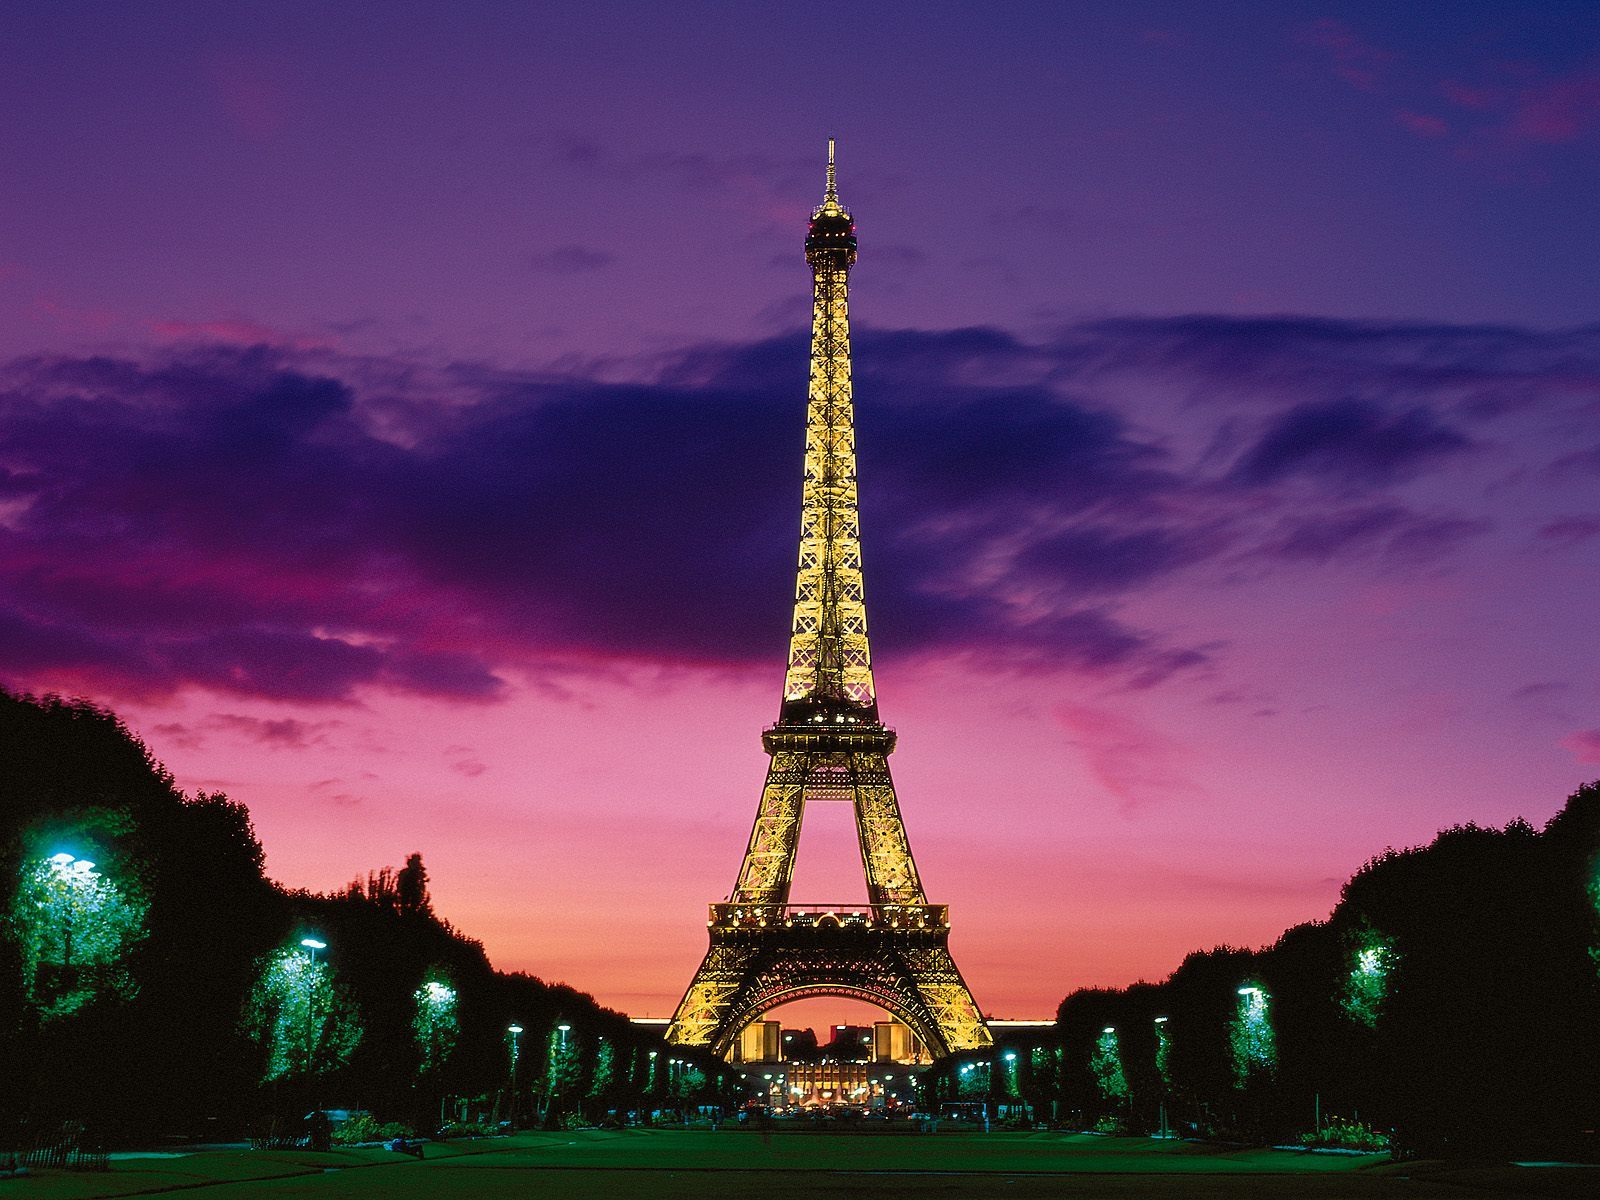 night France tower Eiffel HD Wallpaper